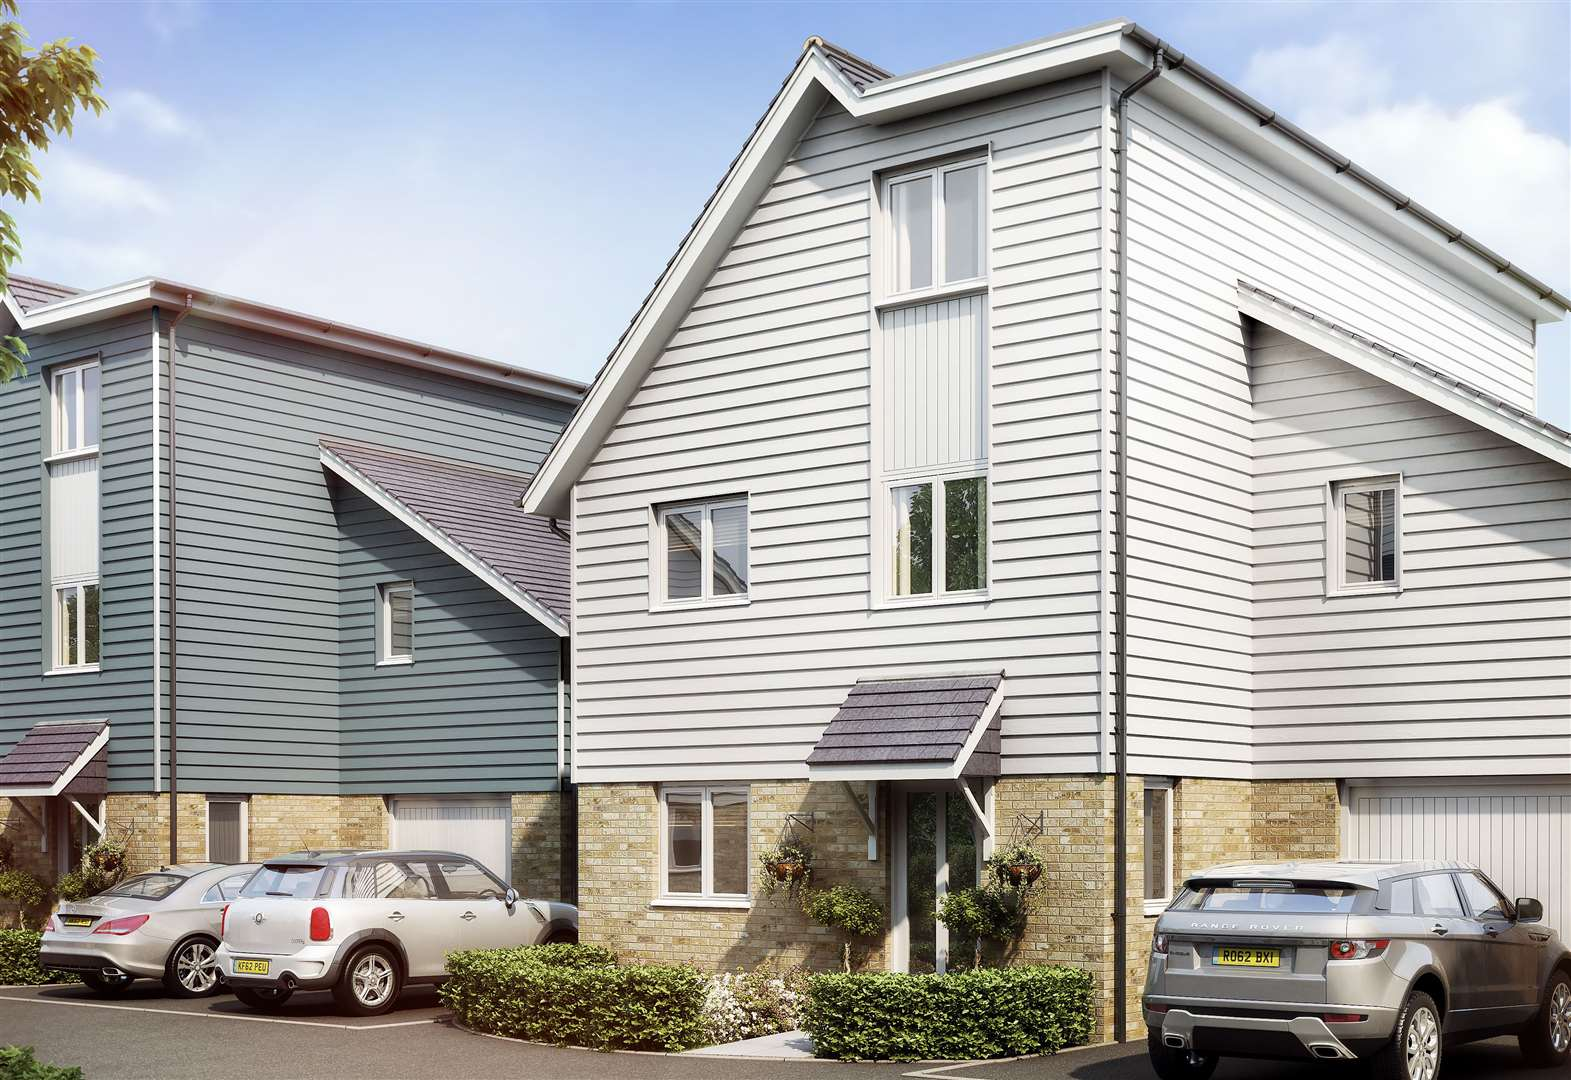 Make a date for new homes open weekend